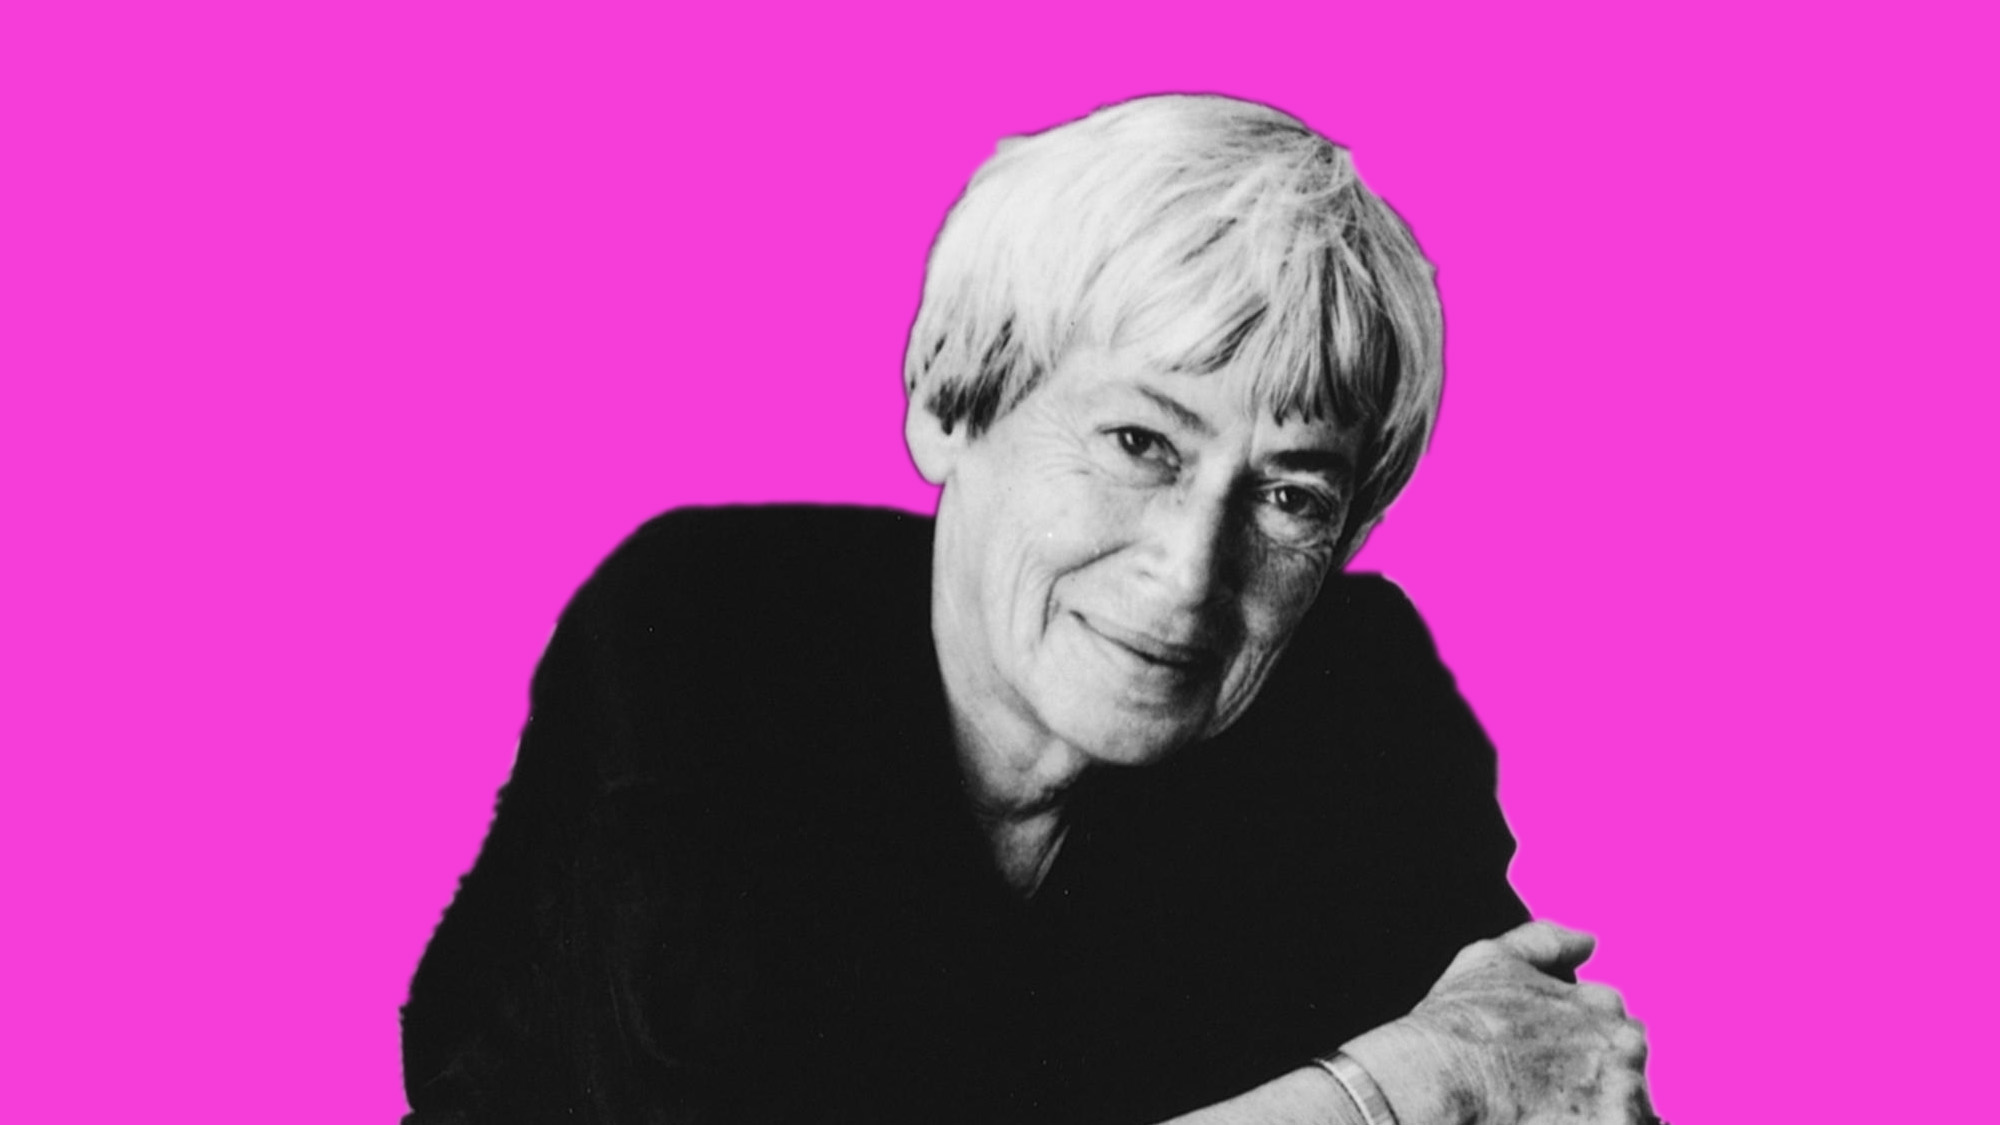 ursula k le guin Complete summary of ursula k le guin's sur enotes plot summaries cover all the significant action of sur.